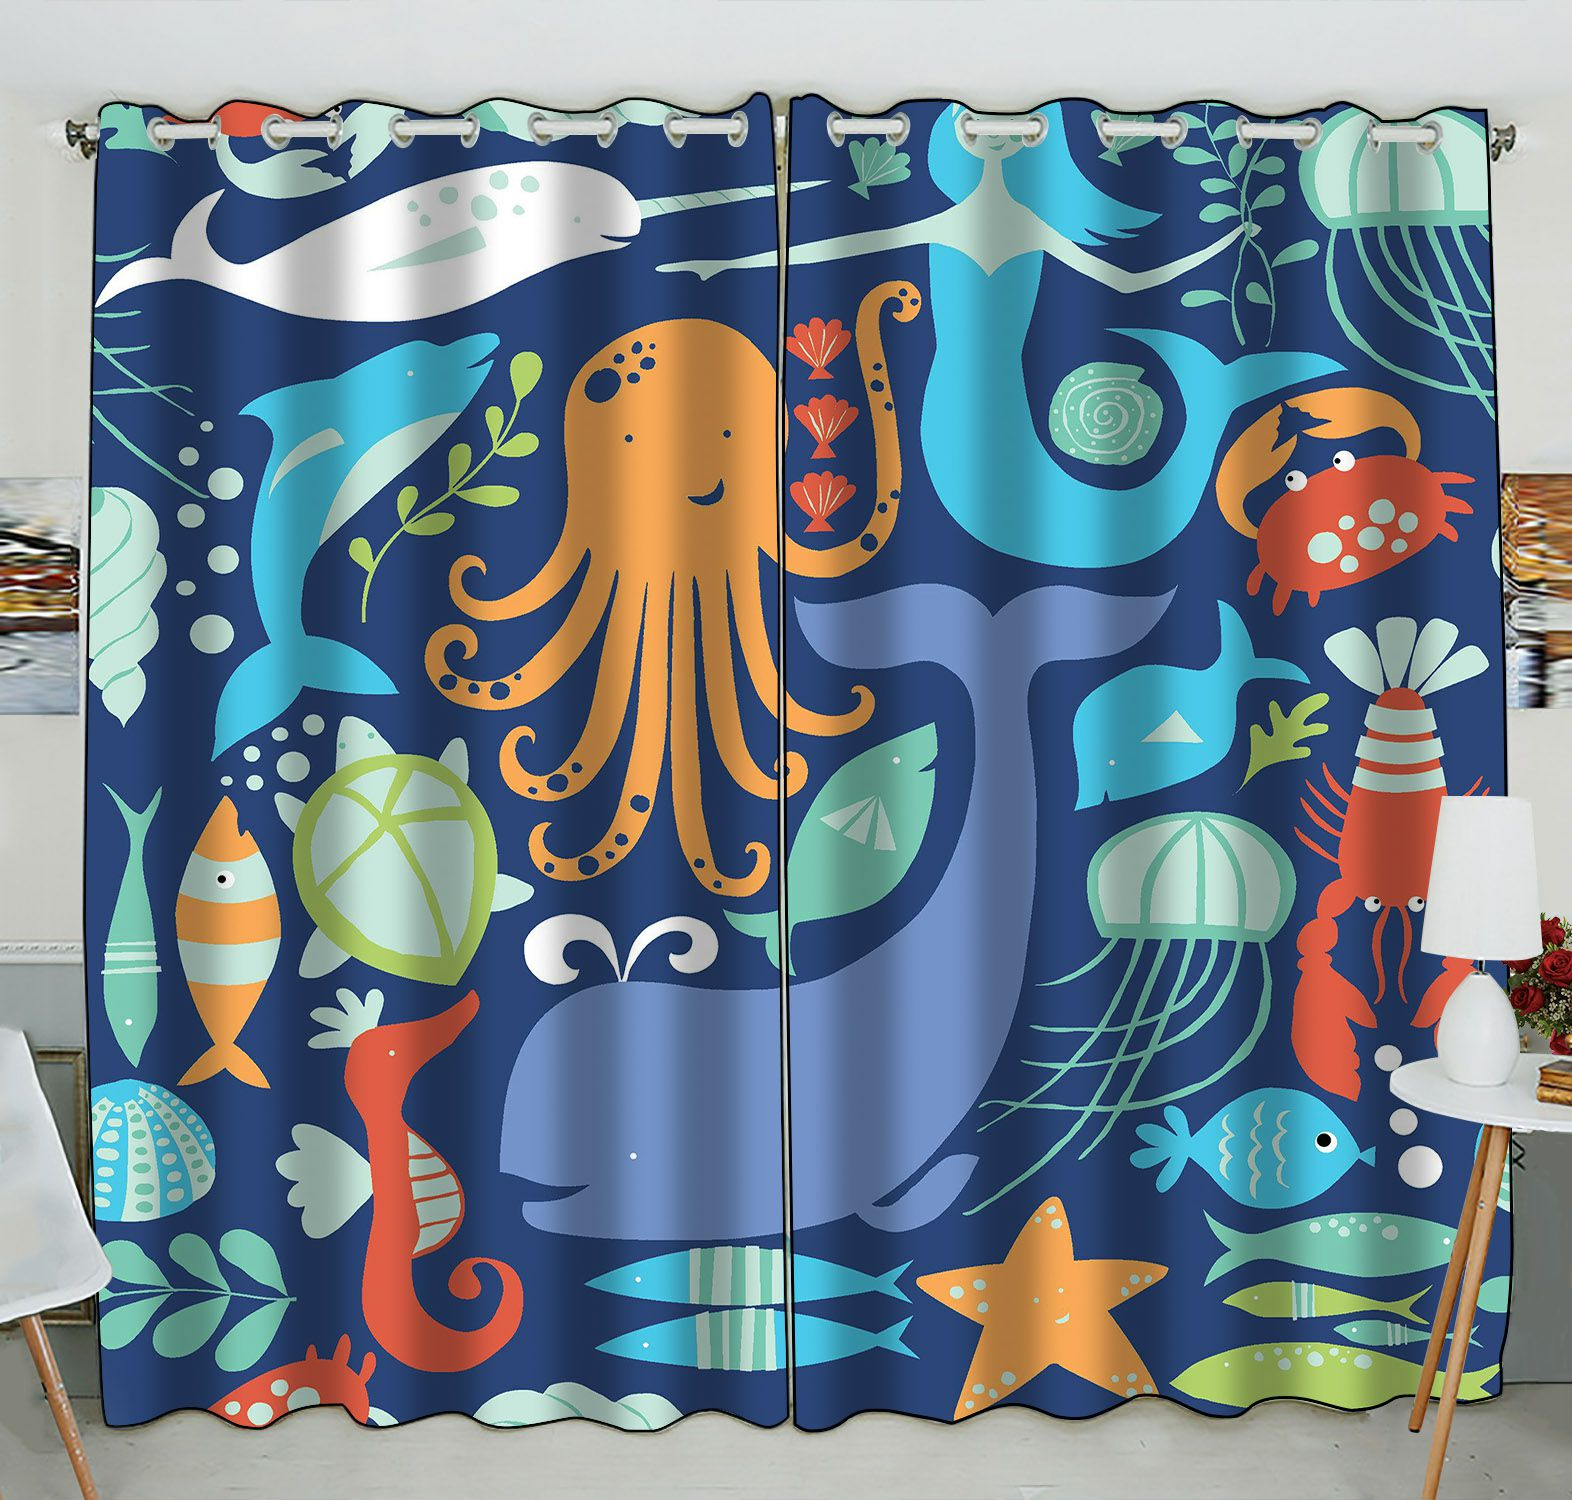 ZKGK Underwater World Sea Life Ocean Animals Fish Coral Window Curtain Drapery/Panels/Treatment For Living Room Bedroom Kids Rooms 52x84 inches Two Panel